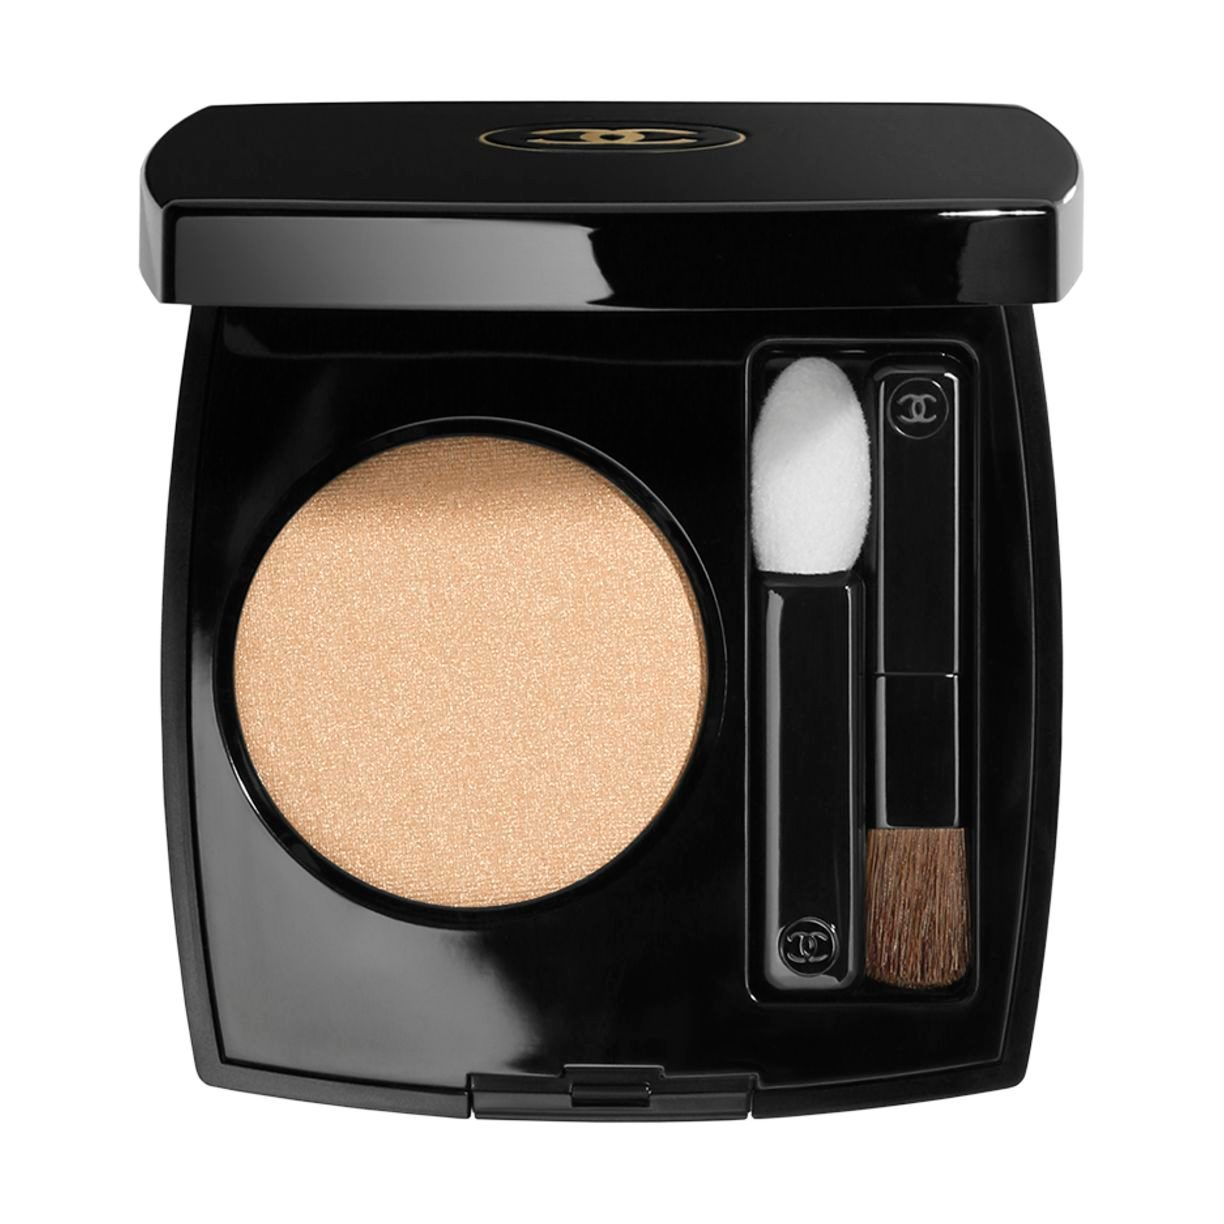 OMBRE PREMIÈRE LONGWEAR POWDER EYESHADOW 46 - HIGH-PROFILE